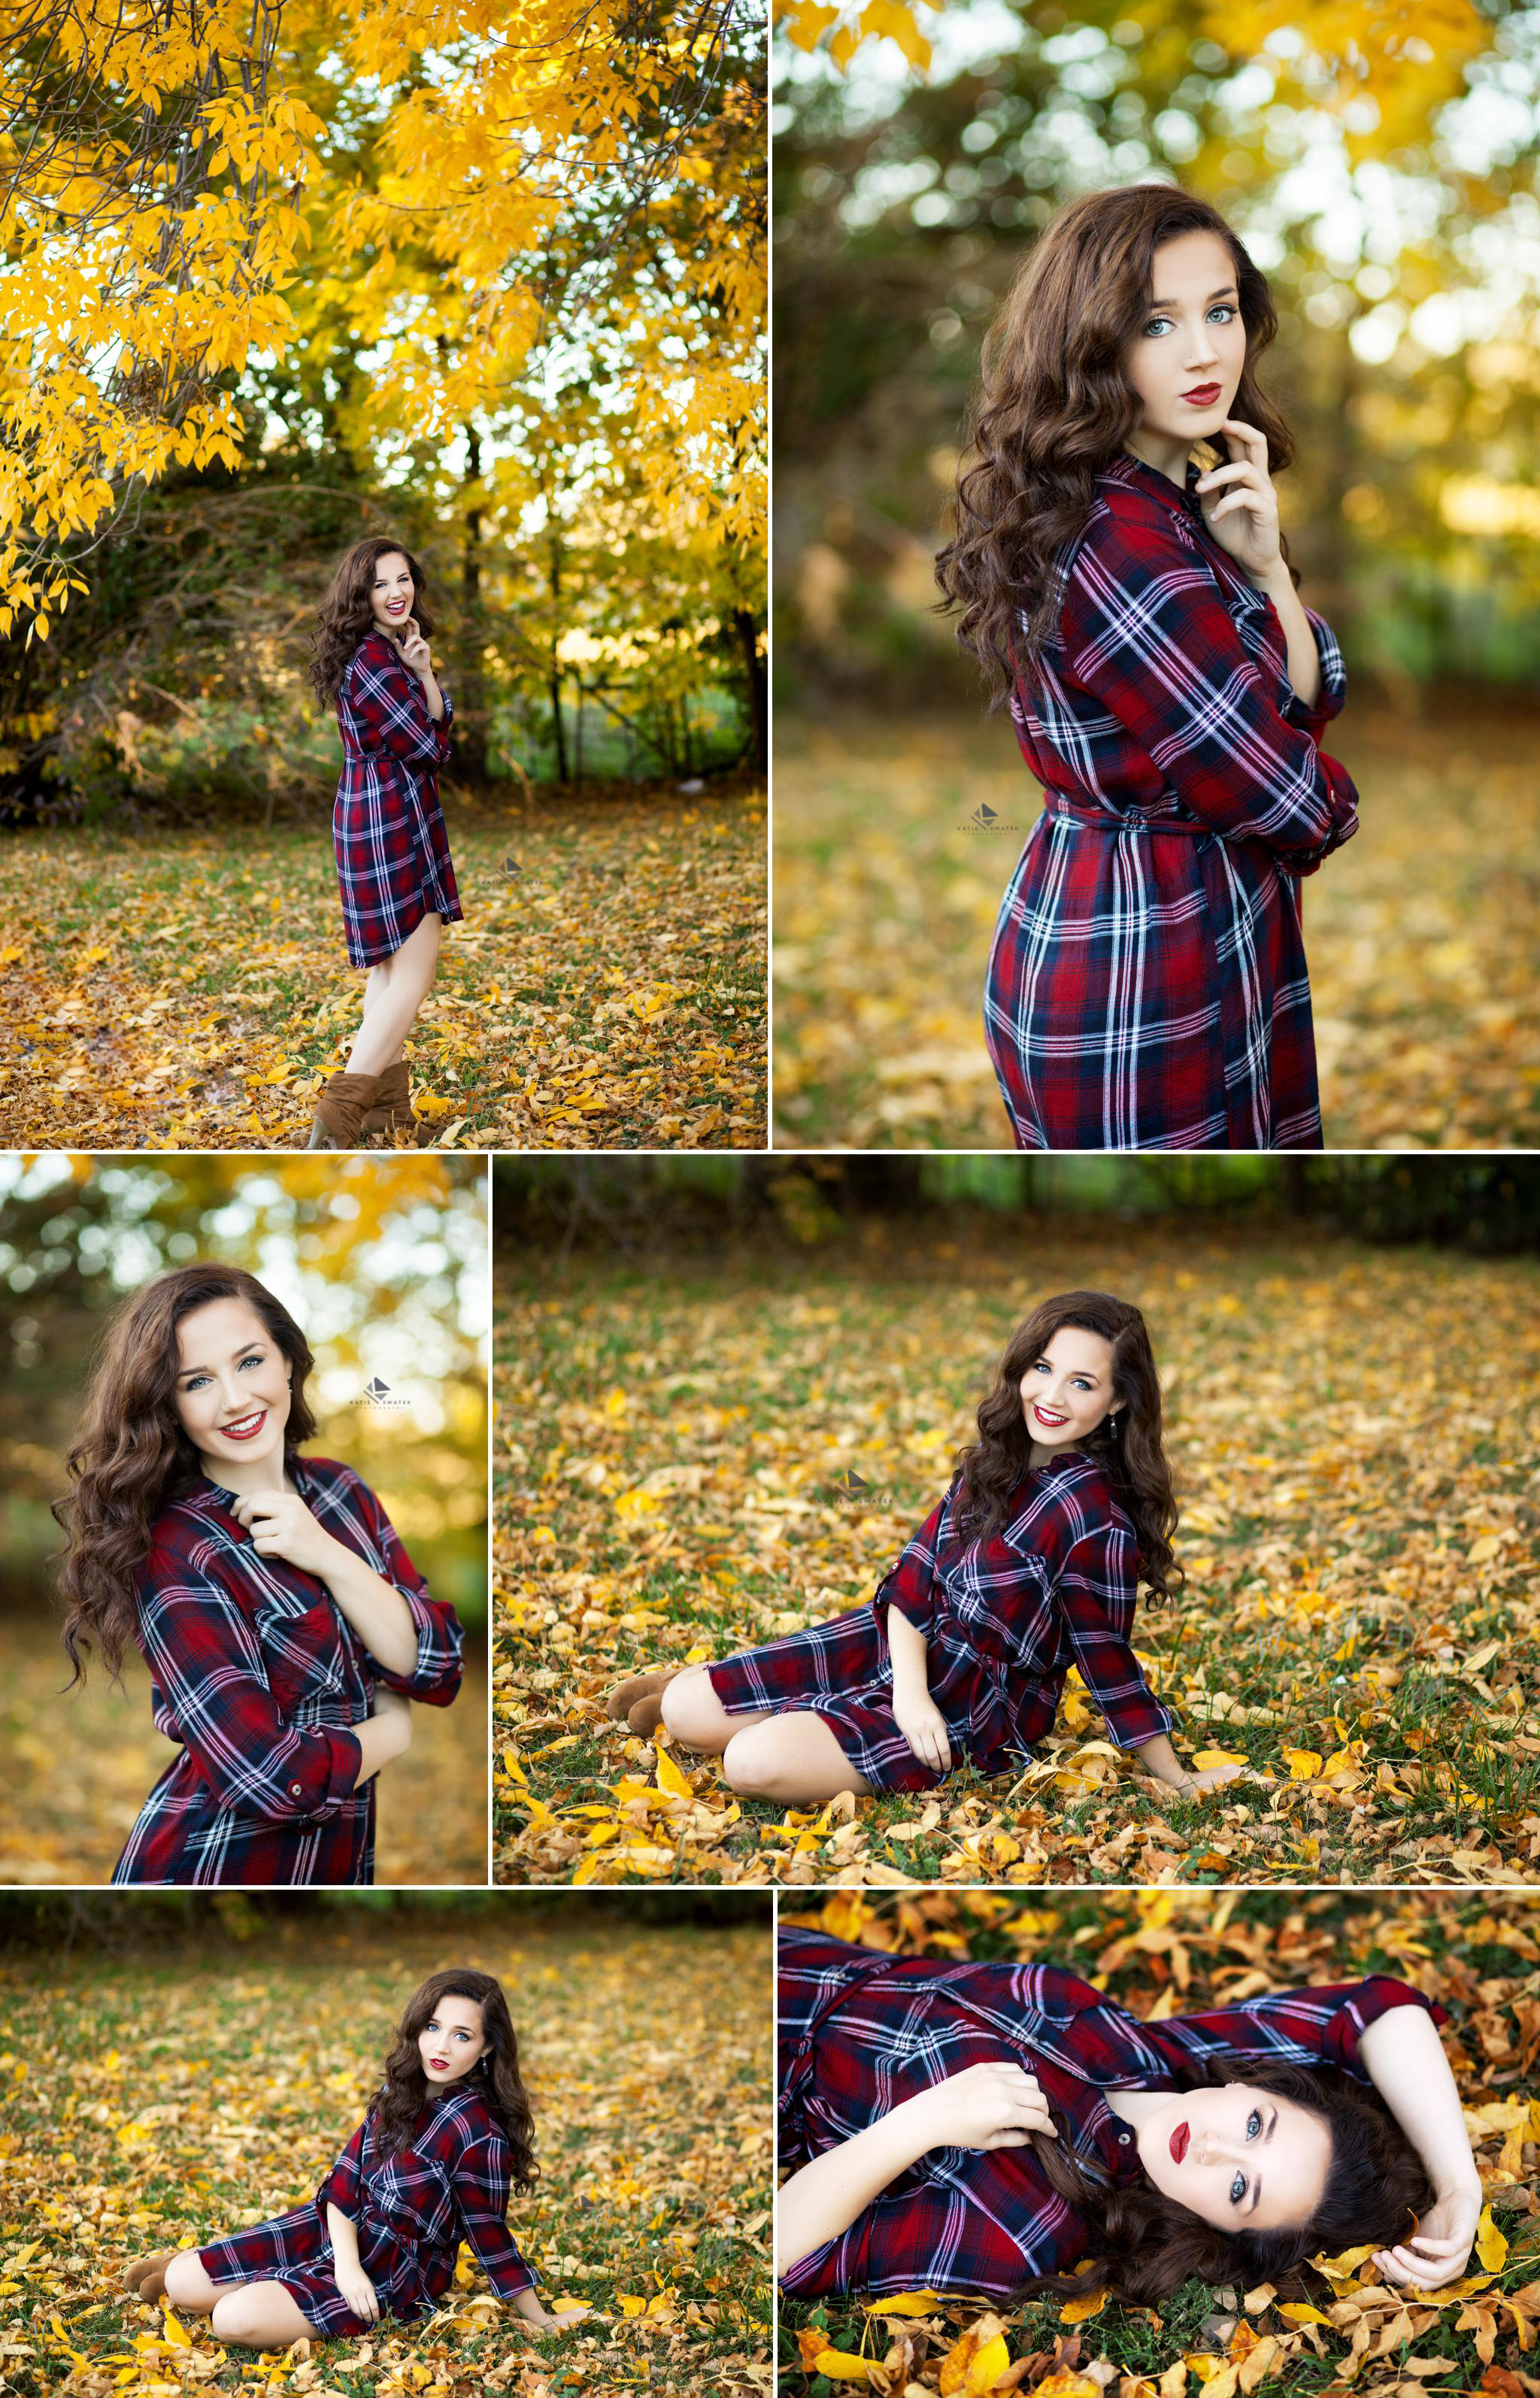 brunette senior girl in  burgundy blue and white plaid dress standing in the yellow foliage of fall in South Dakota